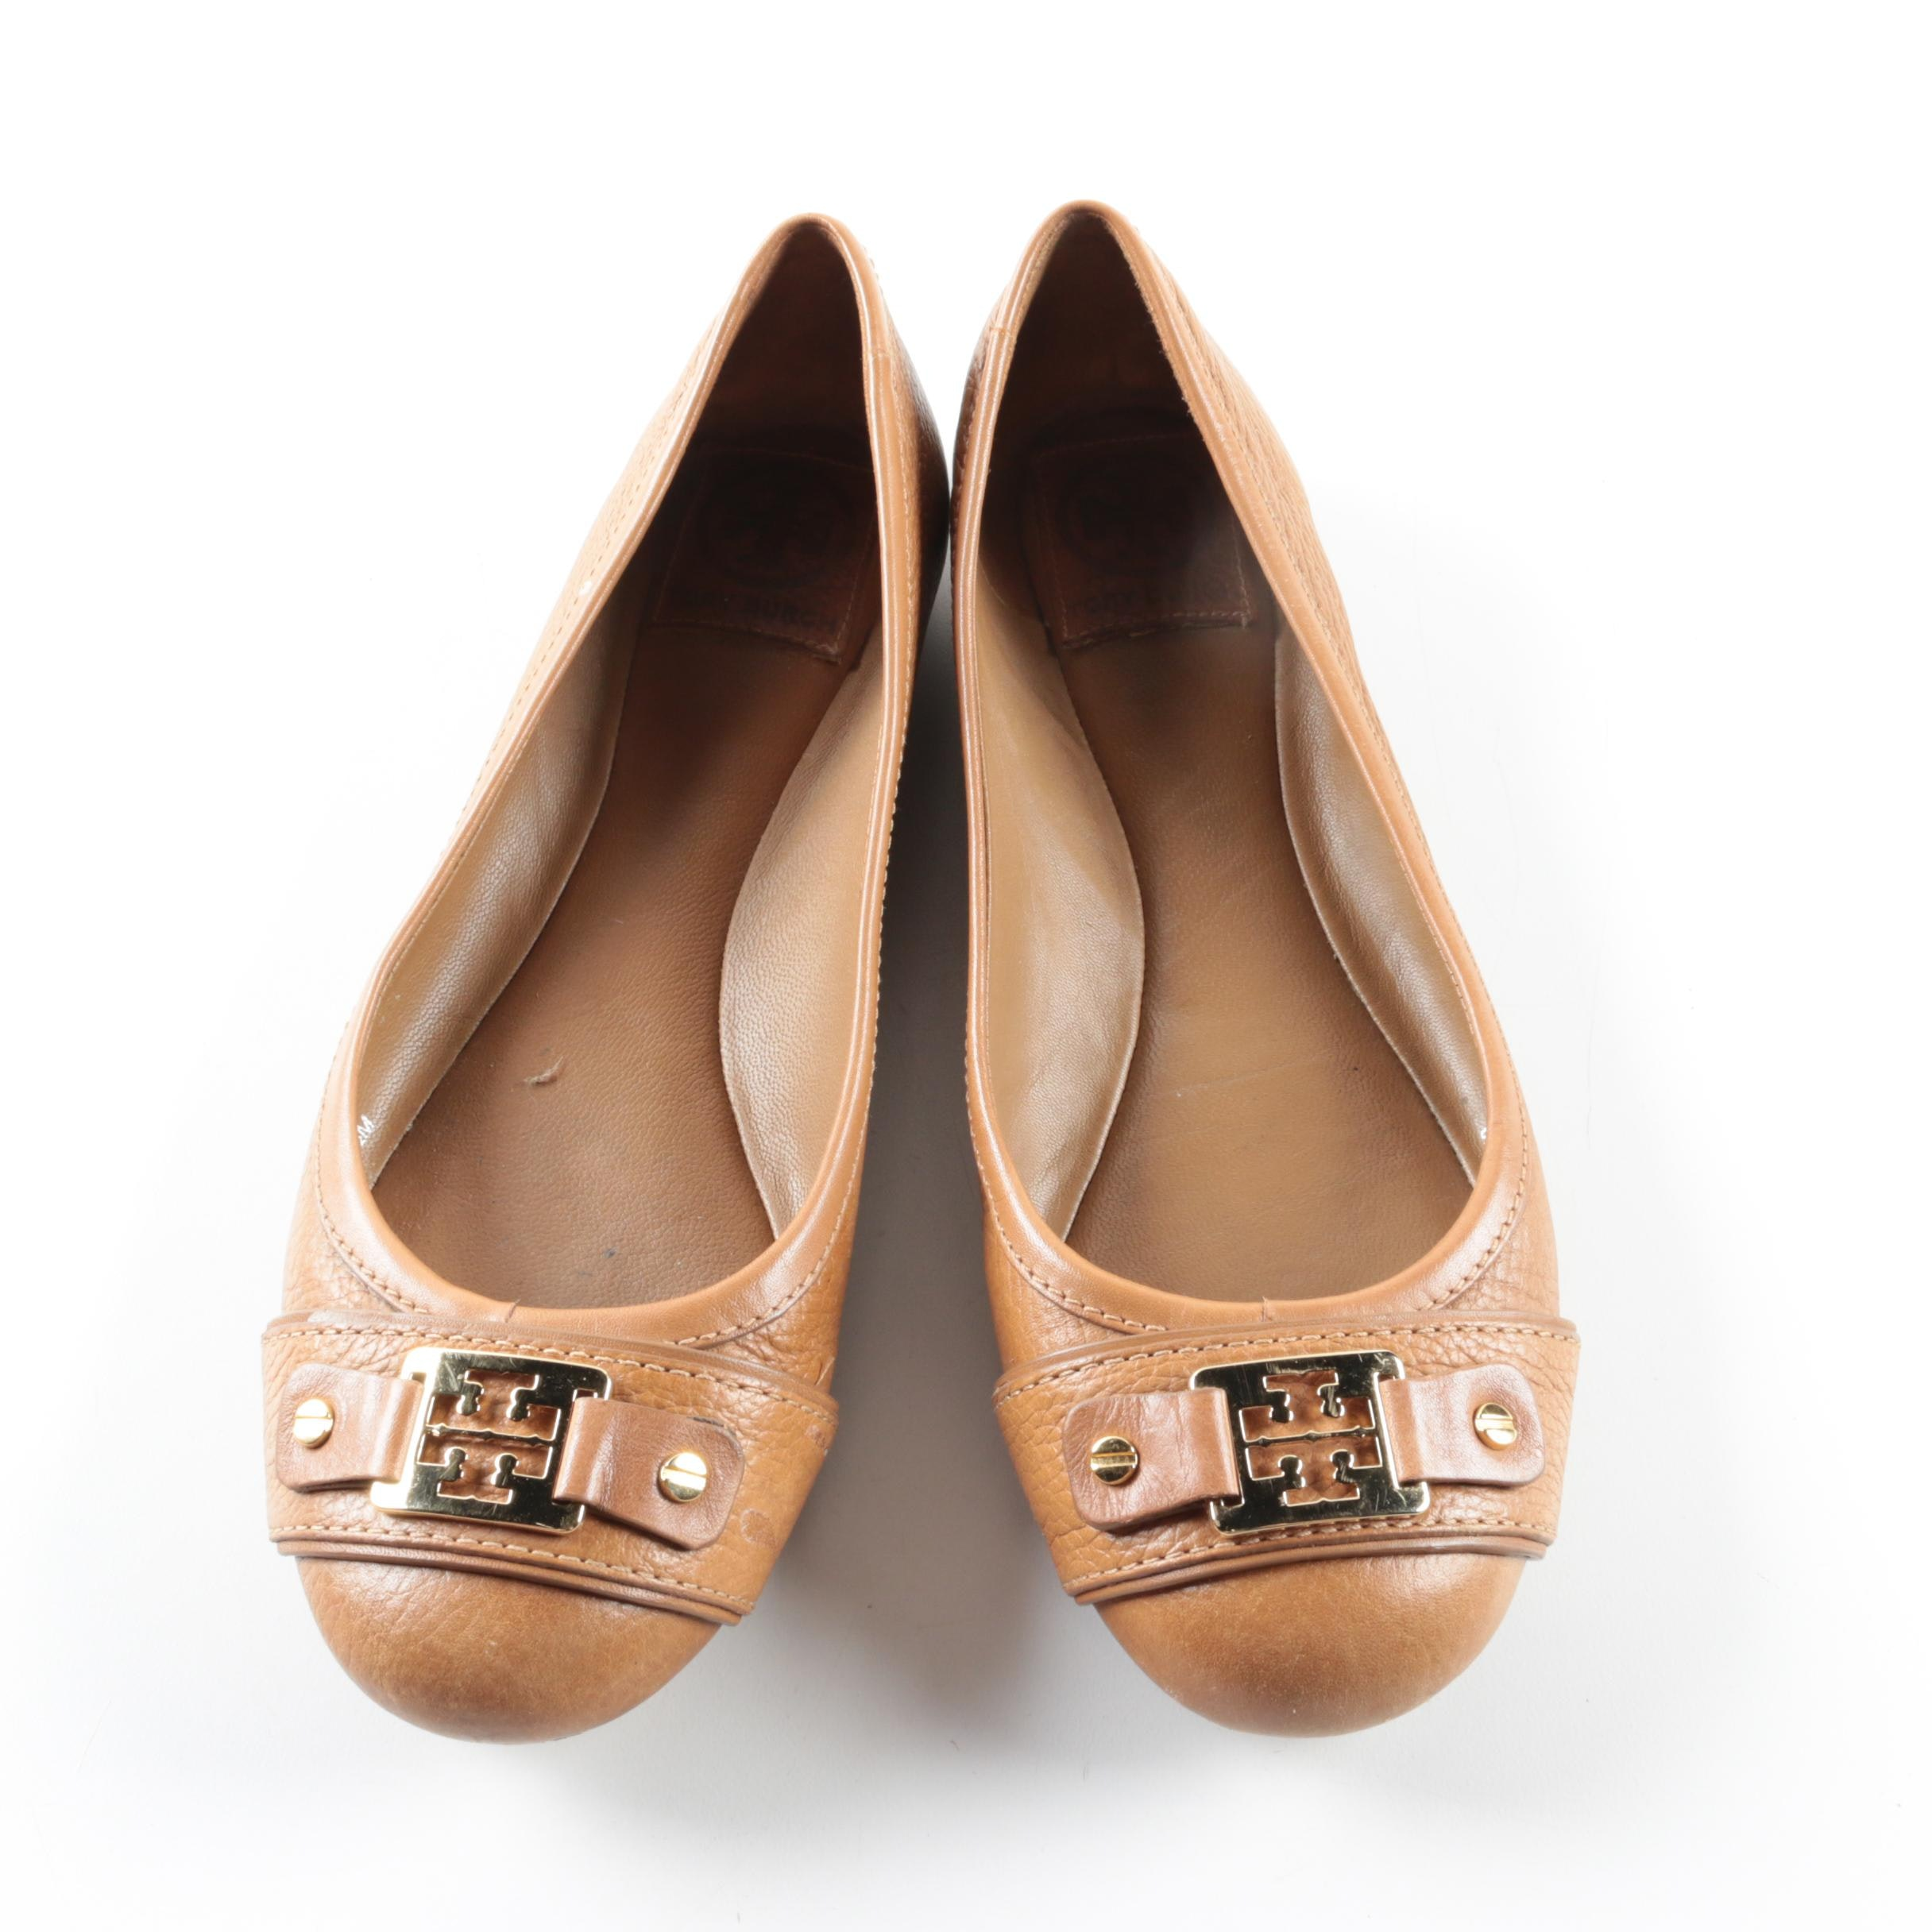 Tory Burch Clines Tan Leather Ballet Flats